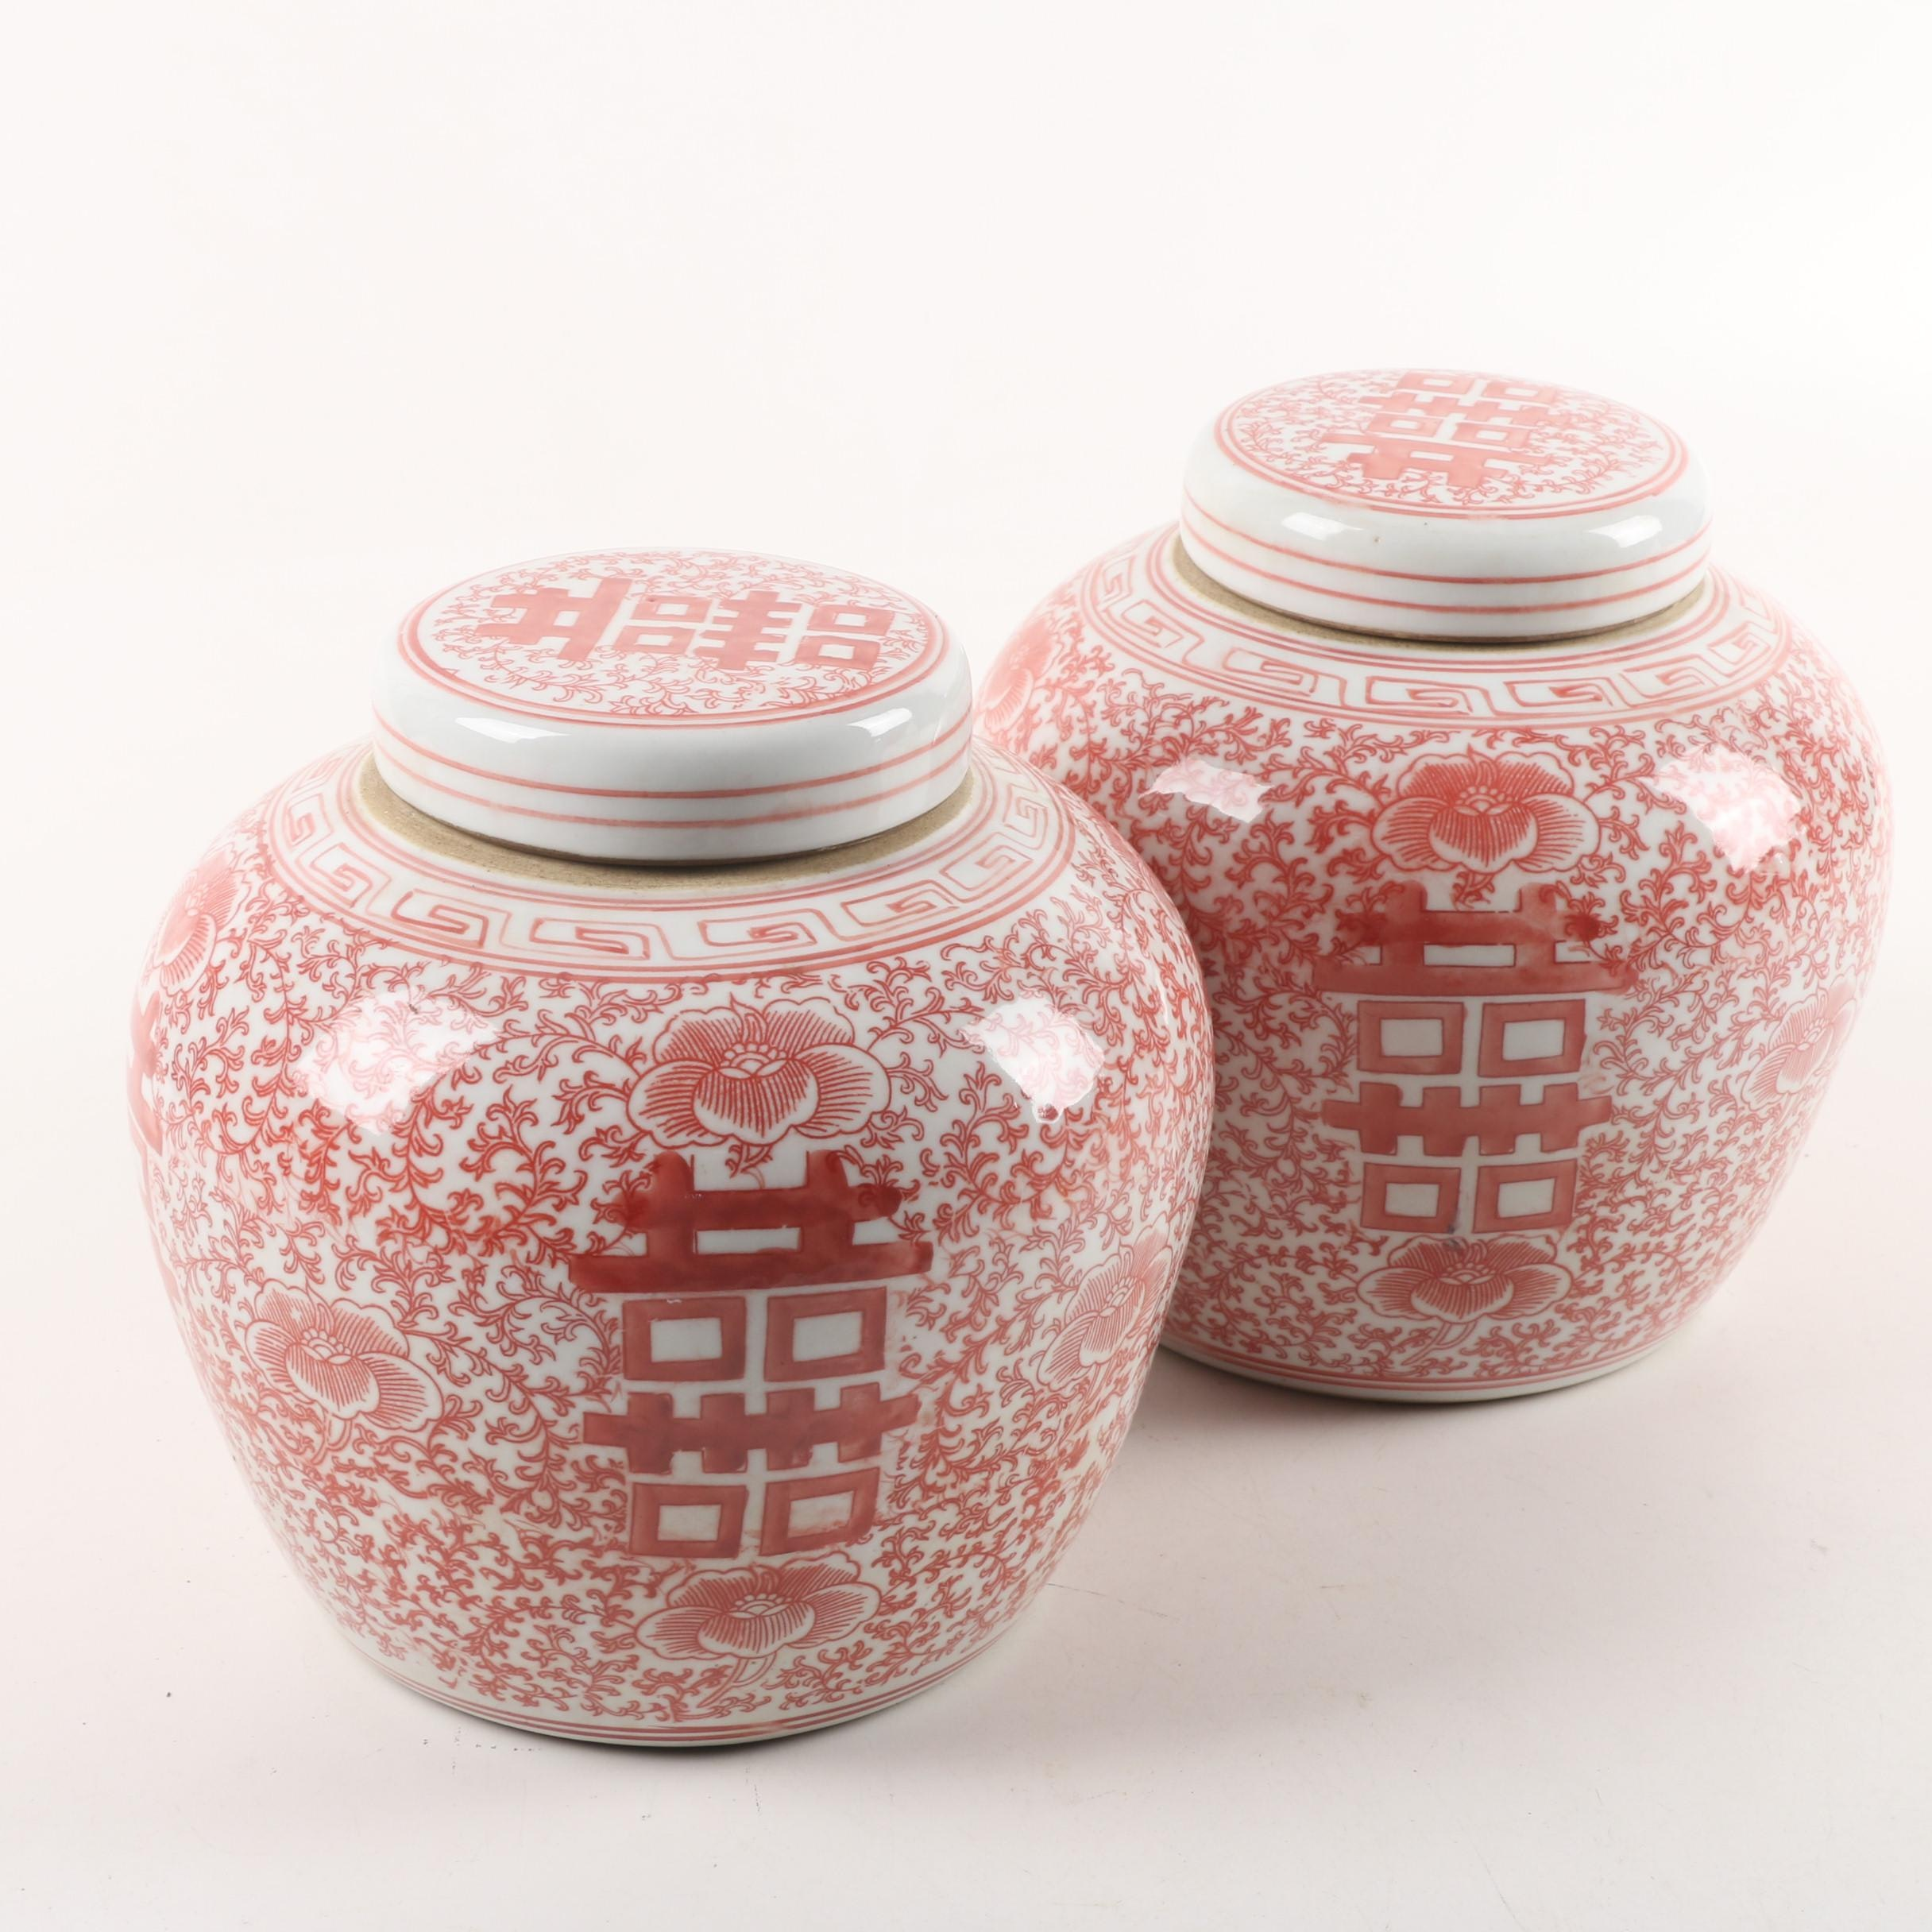 Chinese Inspired Red and White Double Happiness Ceramic Ginger Jars